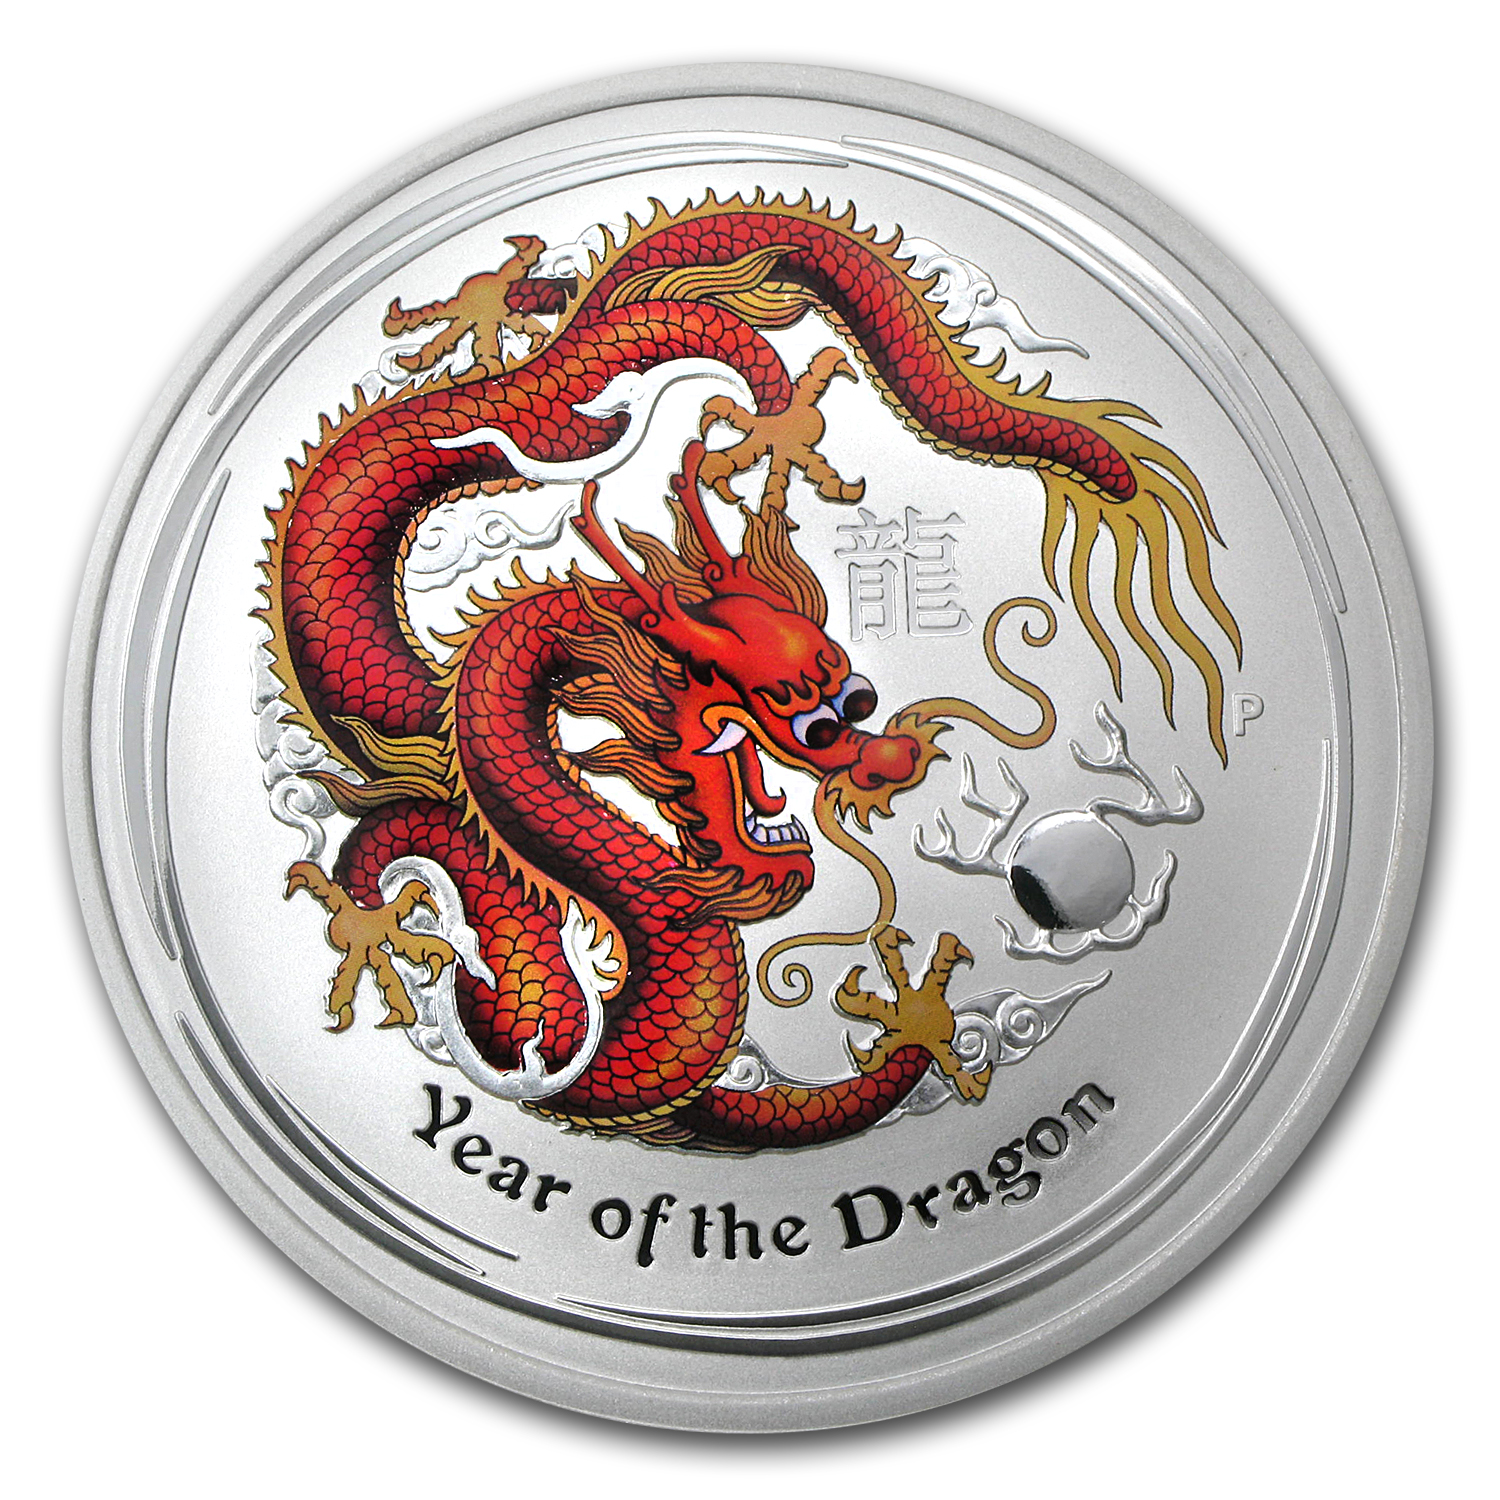 2012 Australia 5 oz Silver Dragon BU (Colorized, Box)